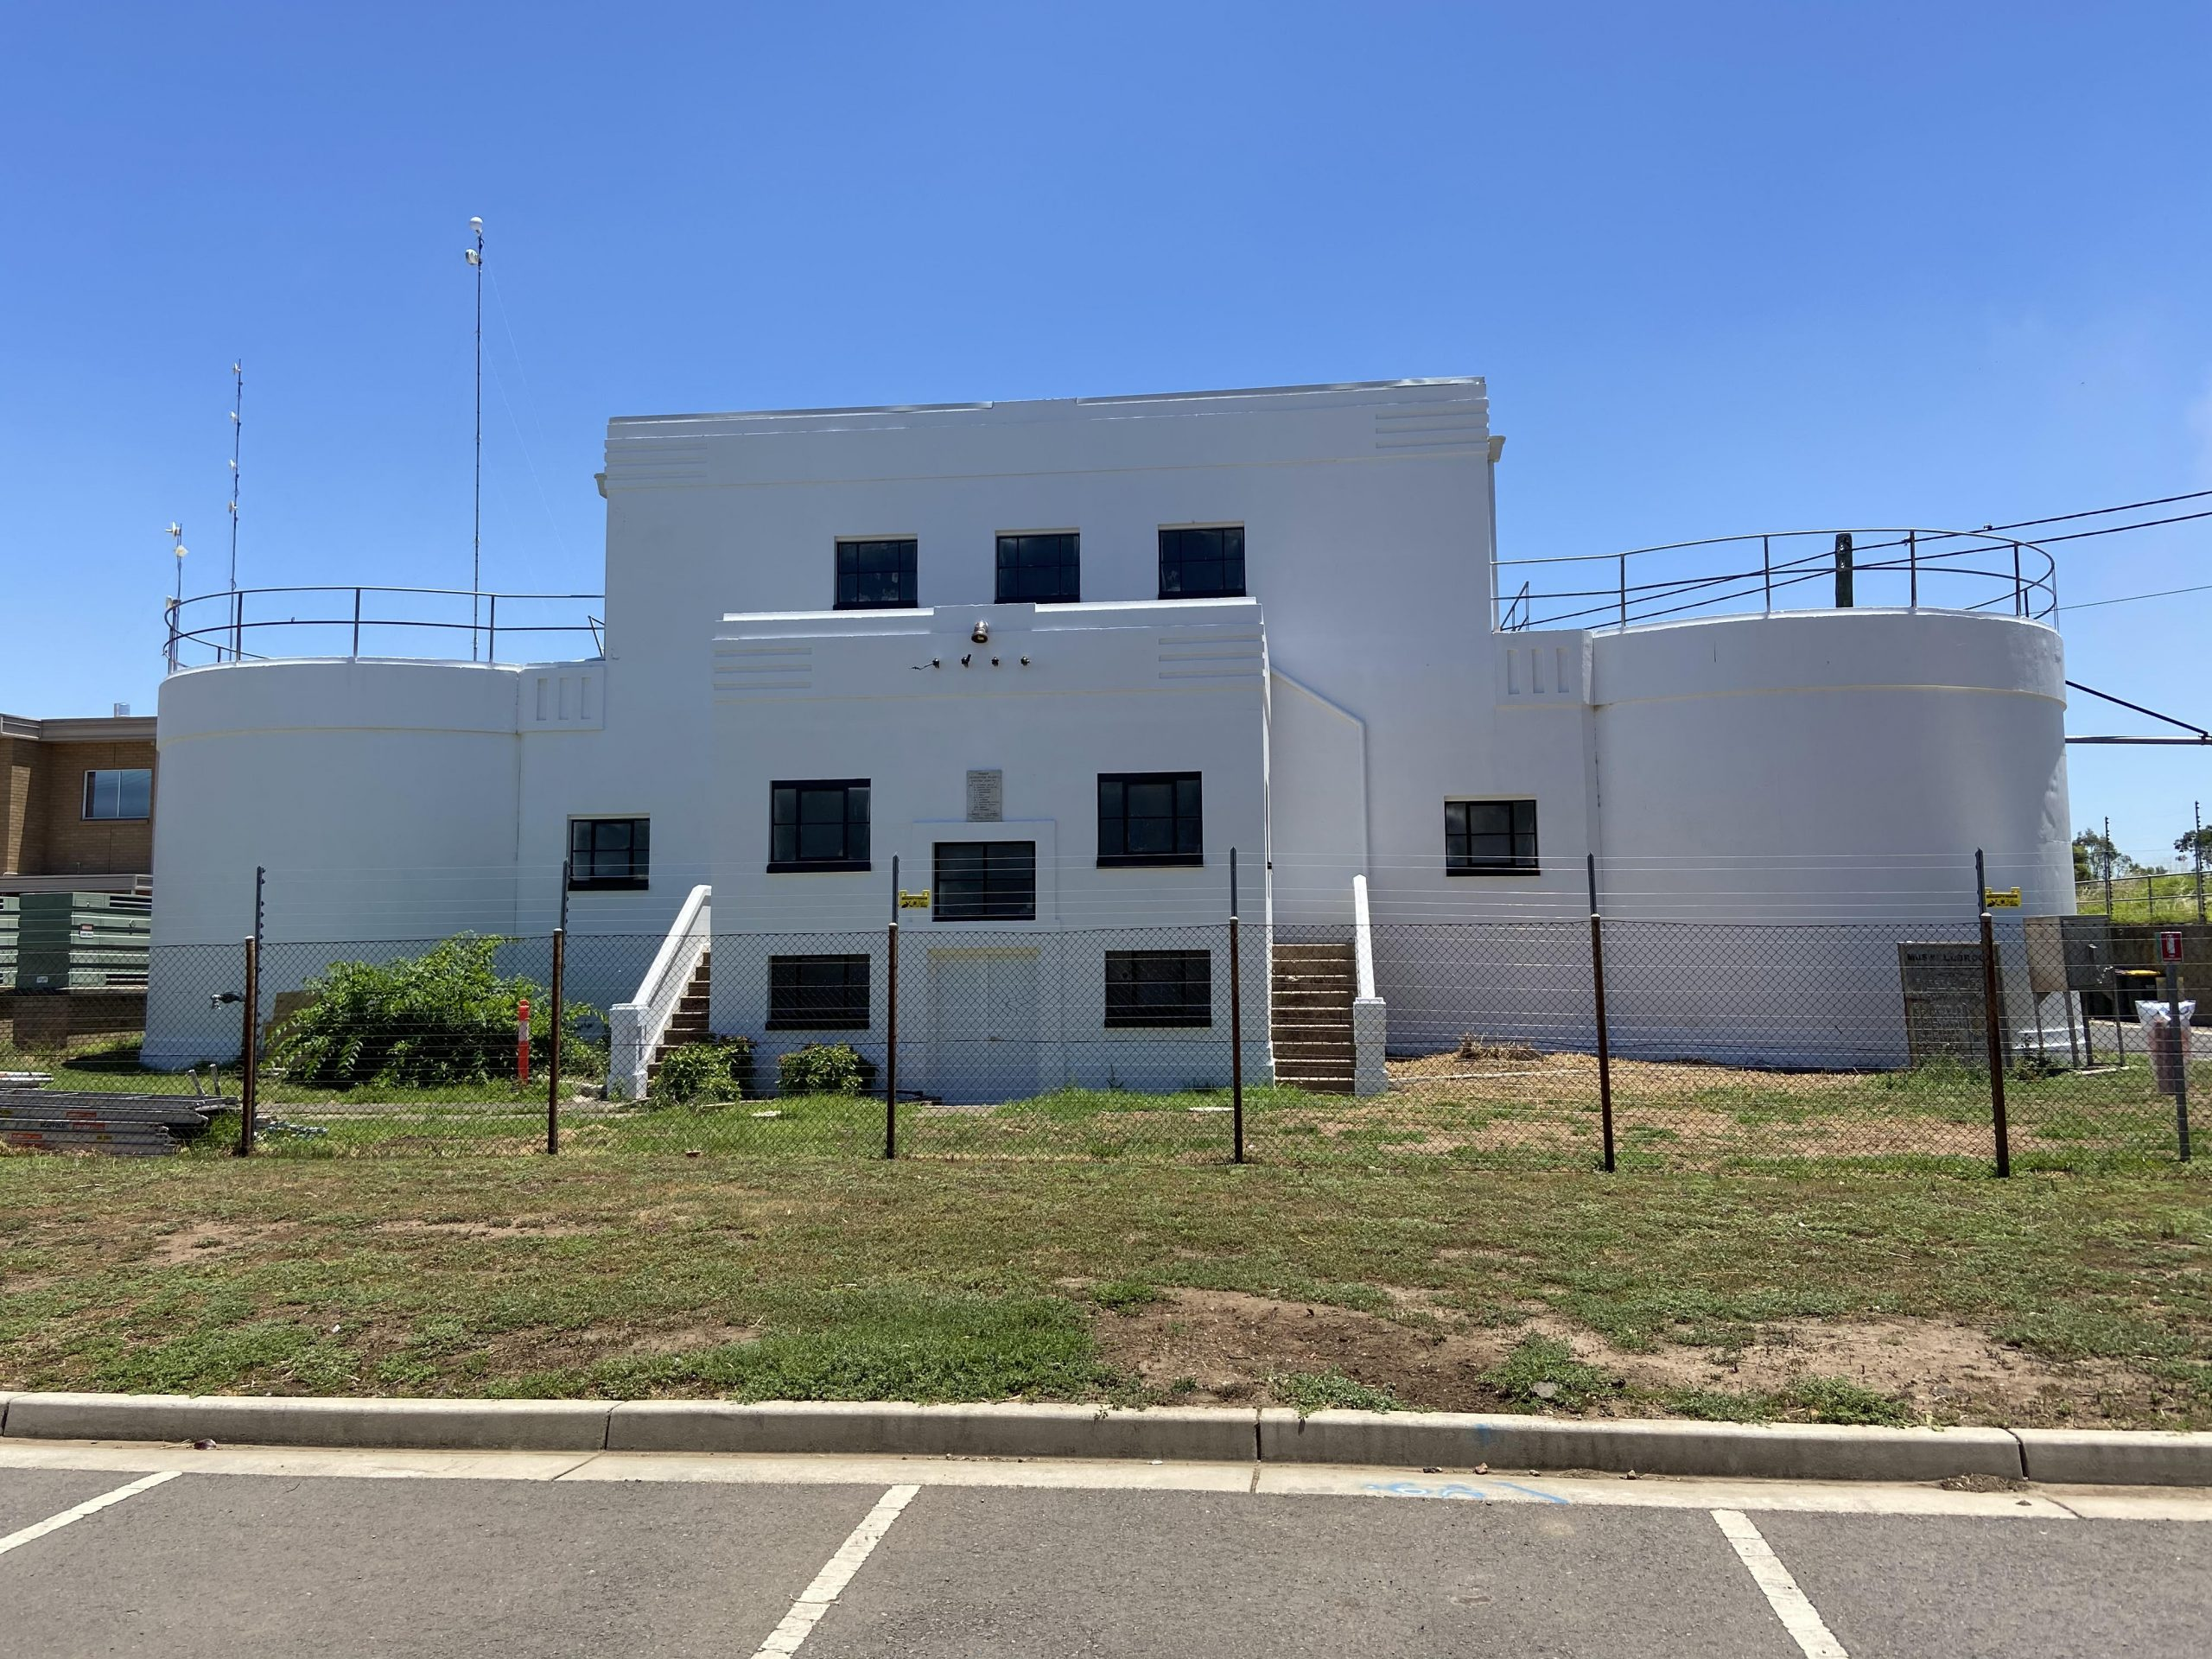 Demolition and remediation works at Water Treatment Plant - Muswellbrook